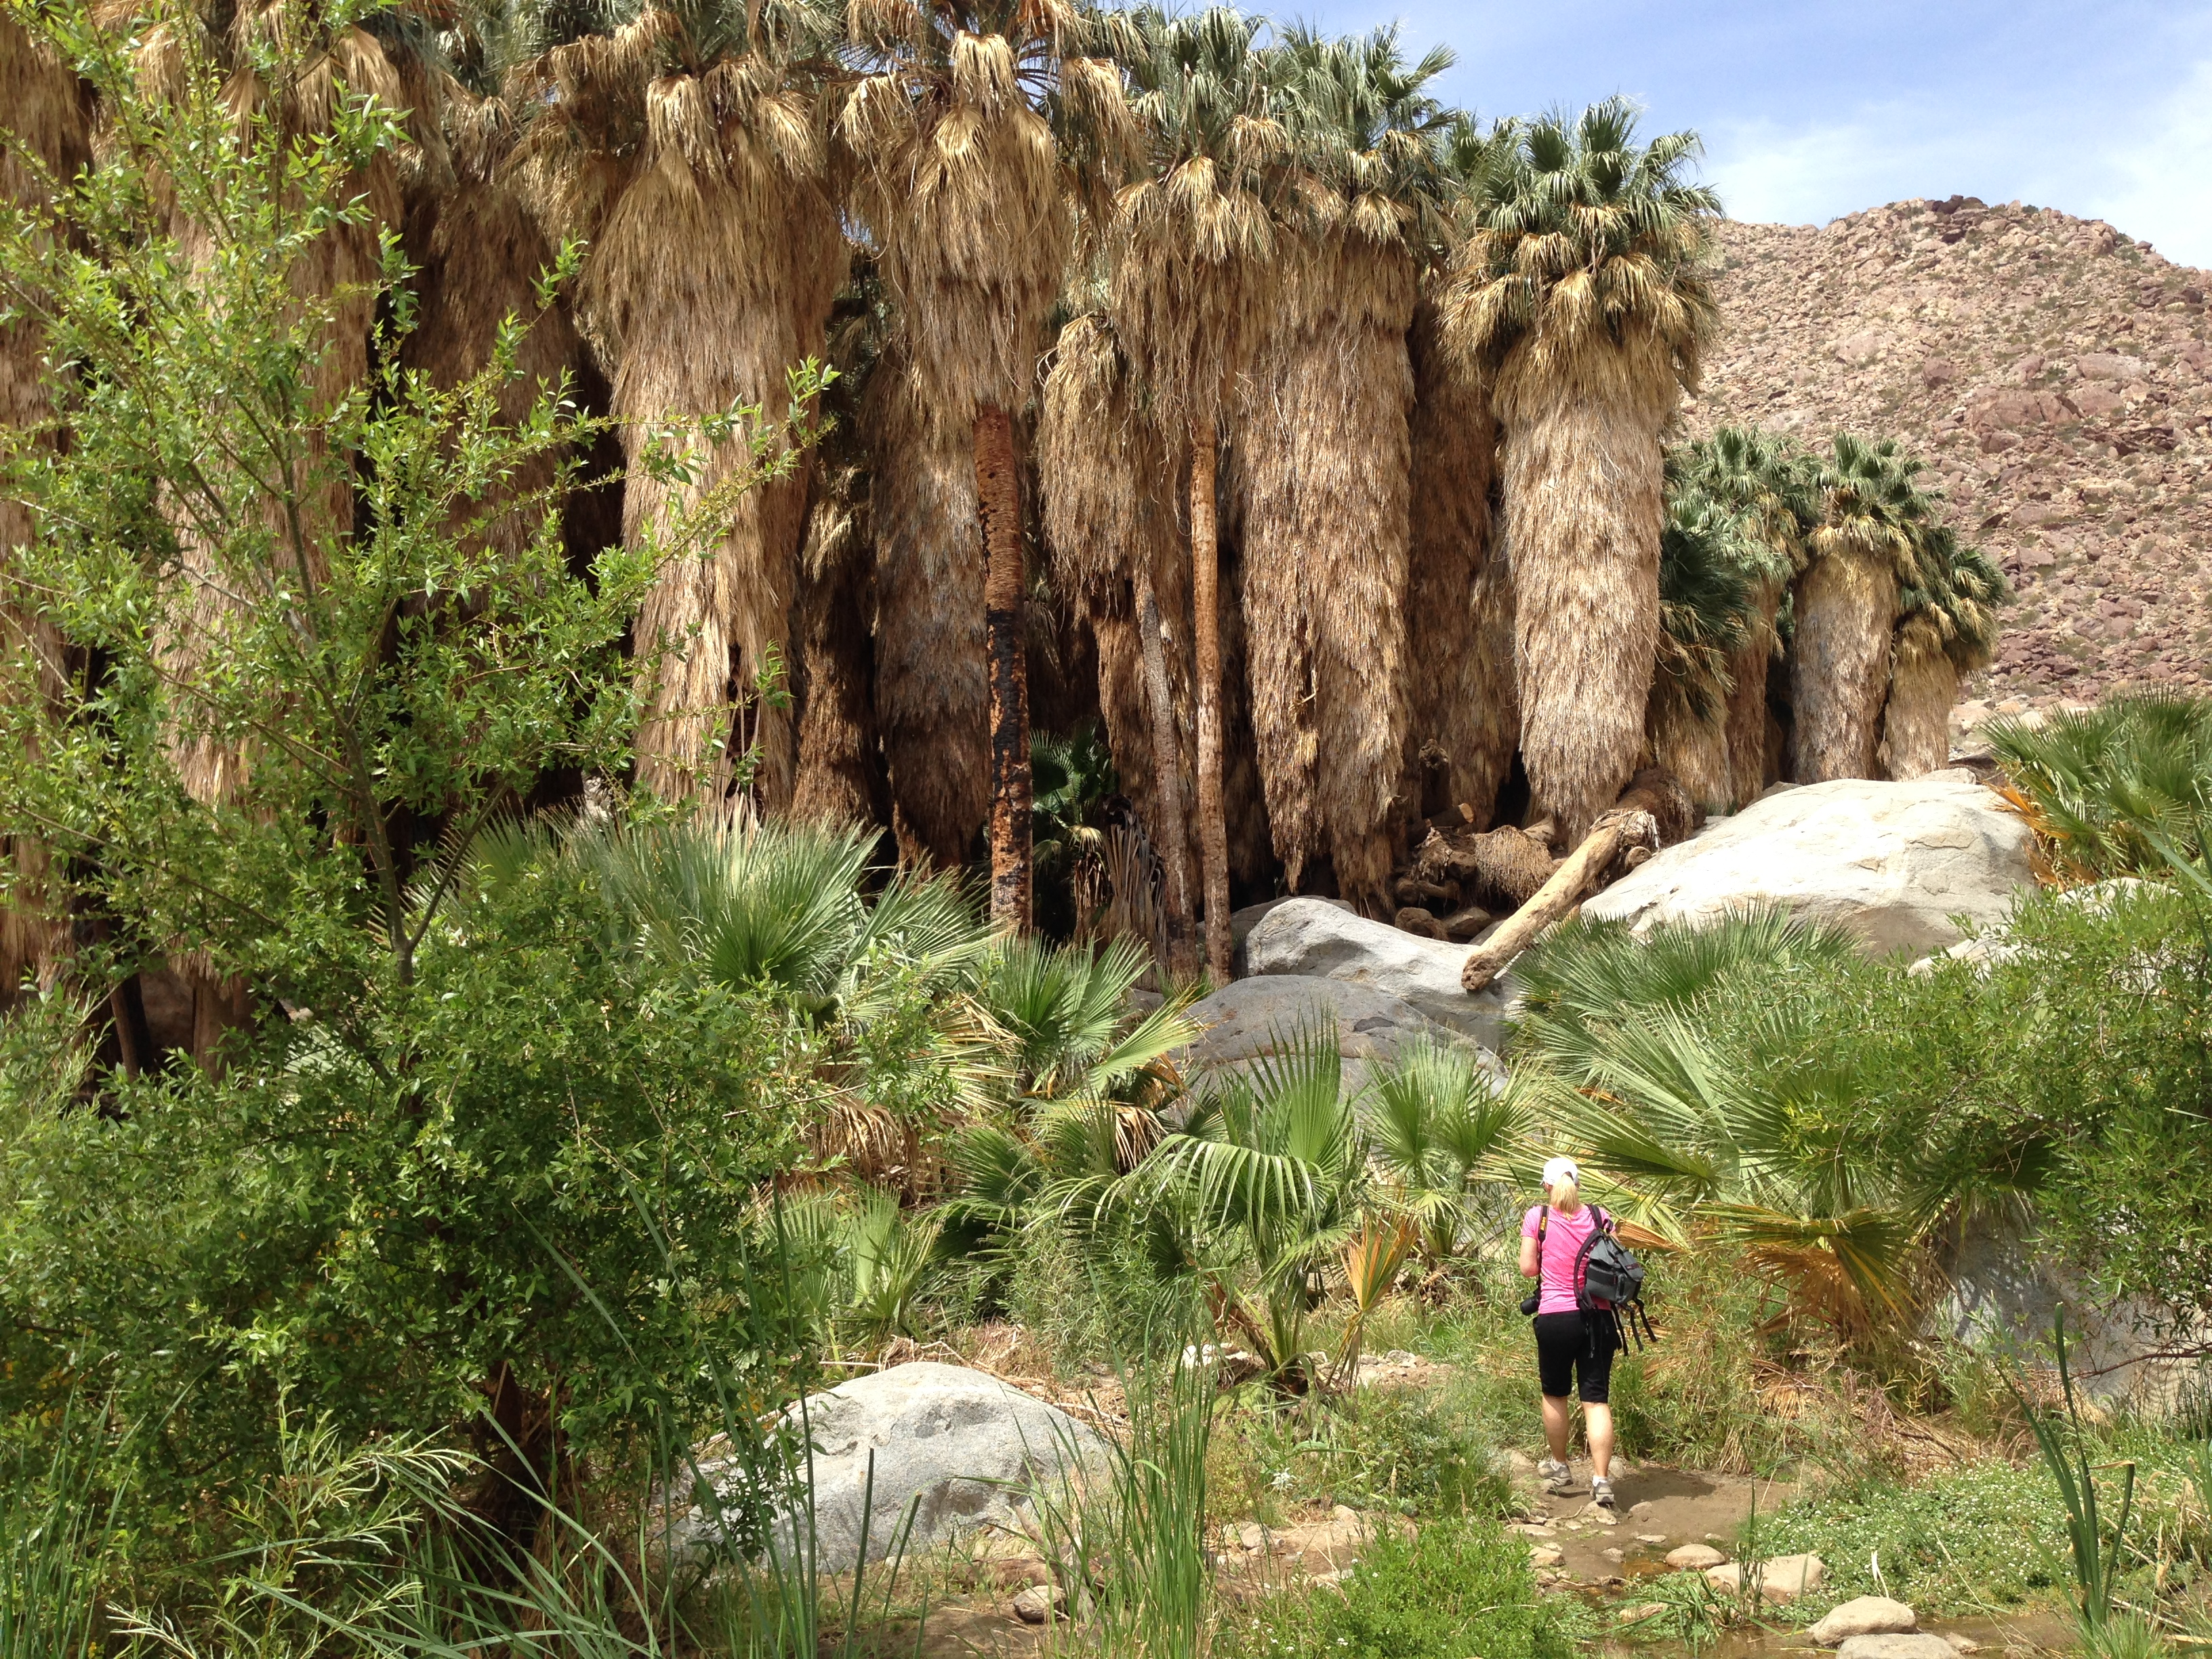 72 Hours in a Palm Springs Desert Oasis